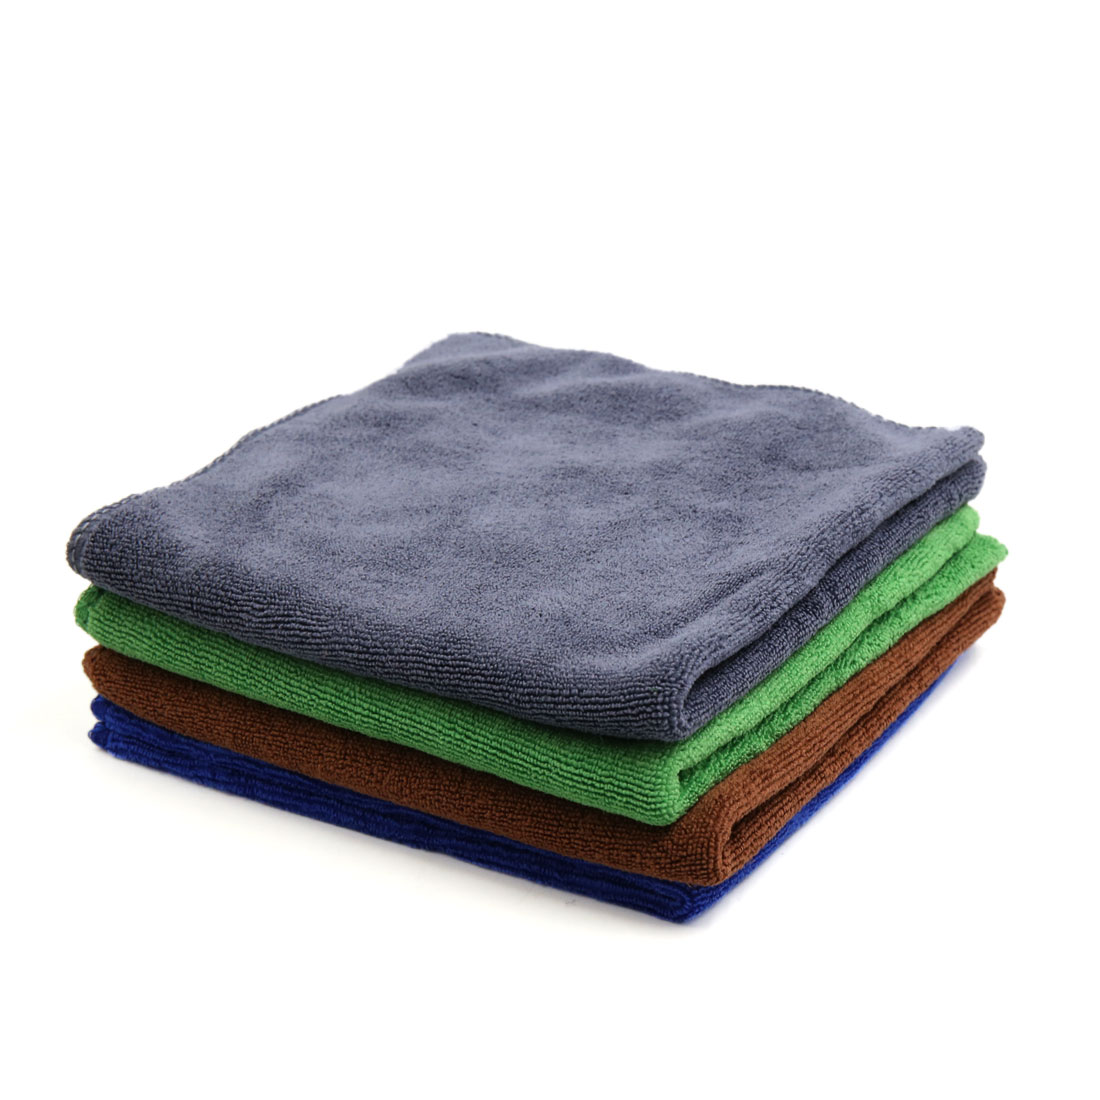 4pcs 400GSM 33 x 33cm Multicolor Microfiber Polishing Cleaning Towel for Car Home